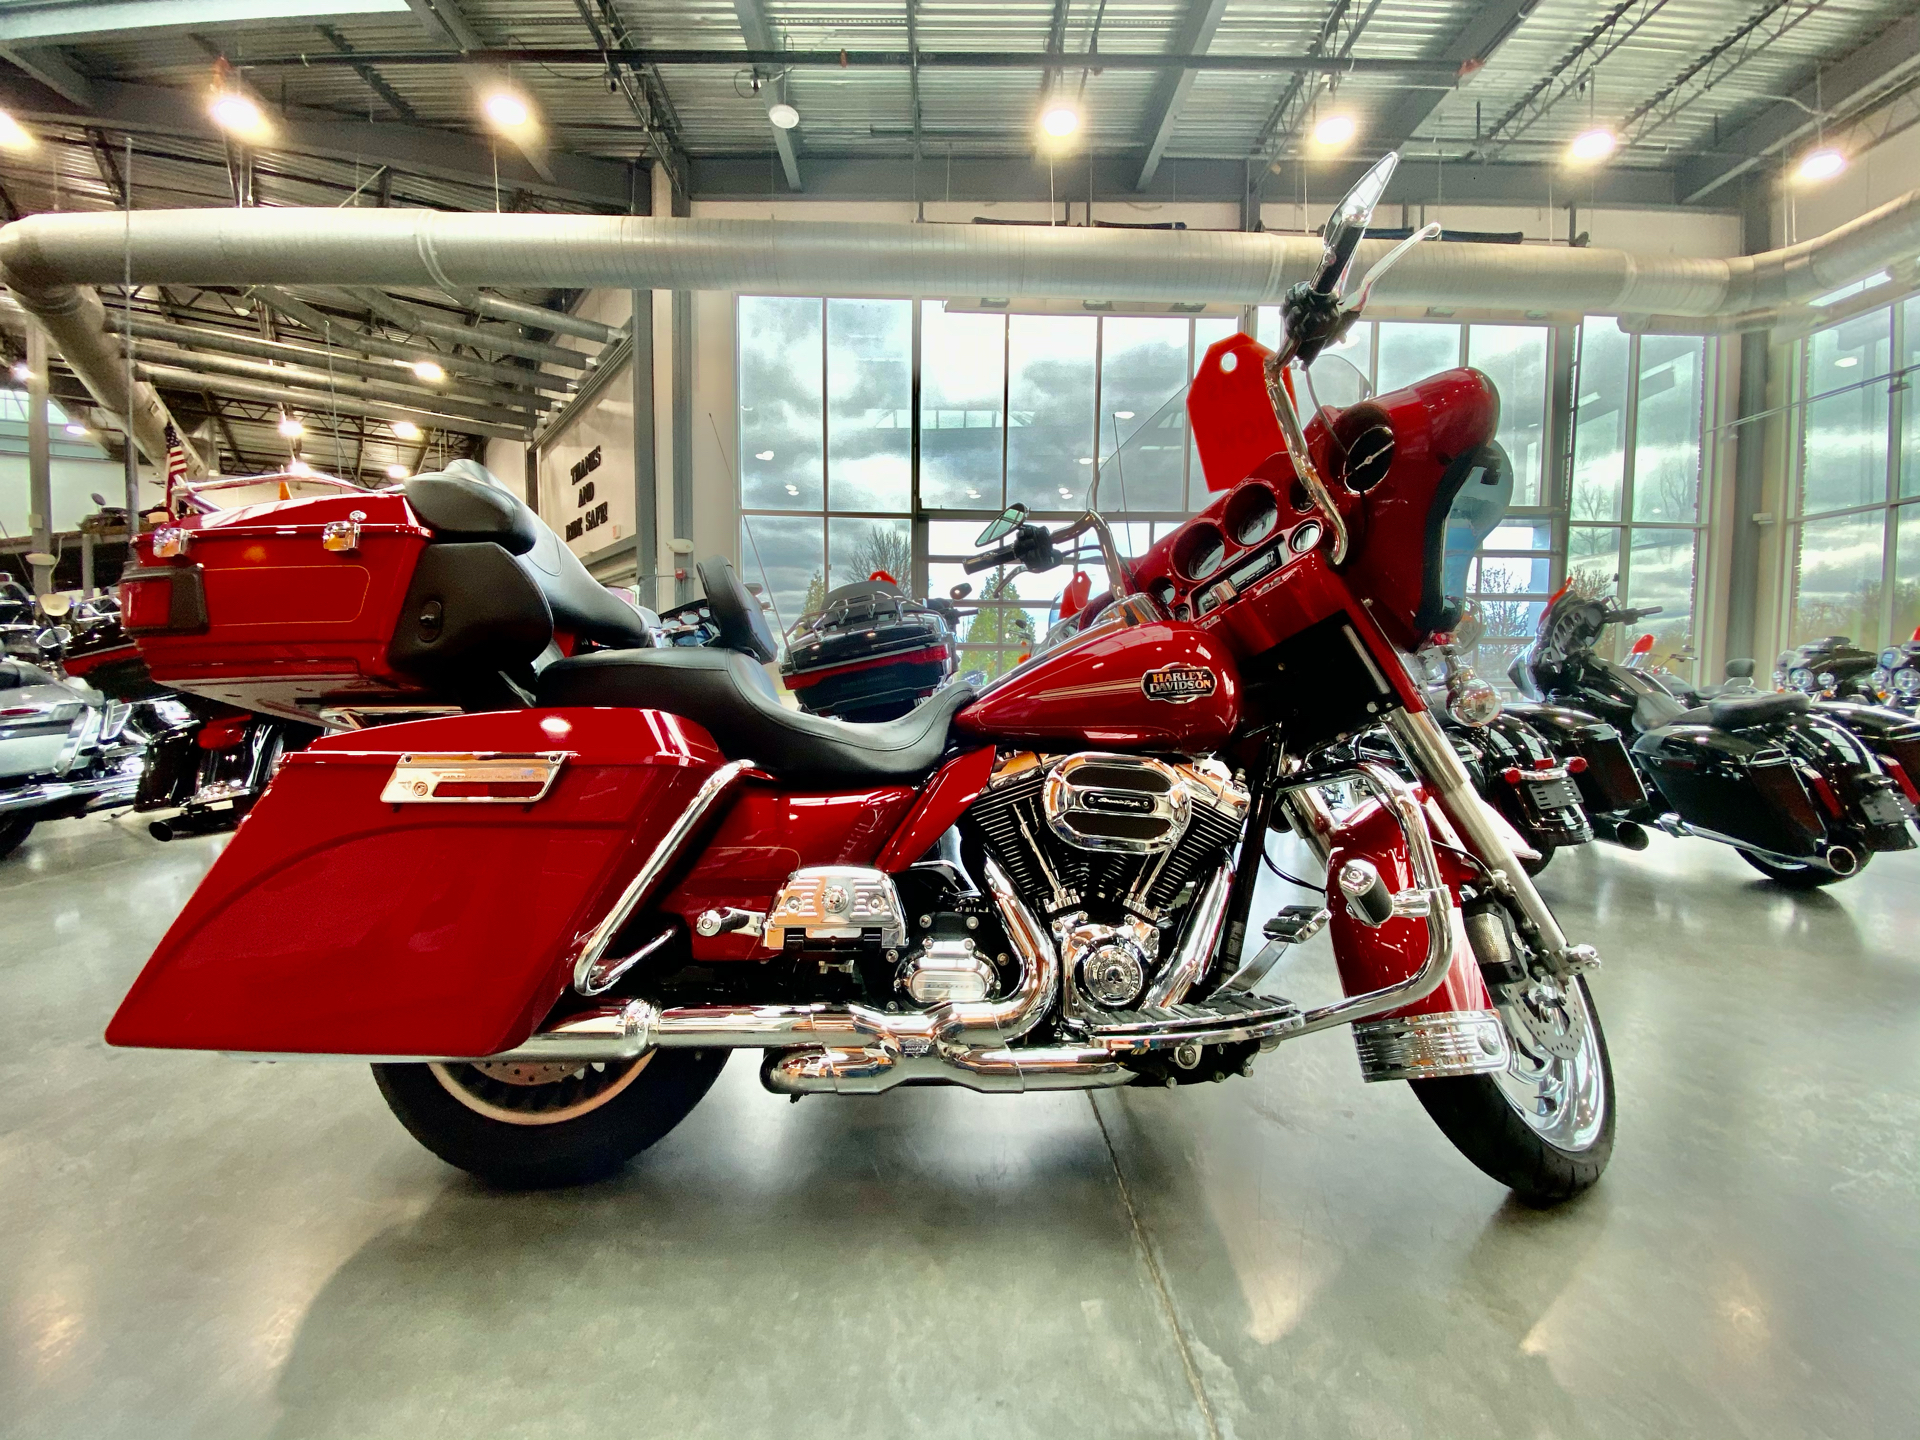 2013 Harley-Davidson FLHTCU Ultra Classic Electra Glide in Columbia, Tennessee - Photo 1